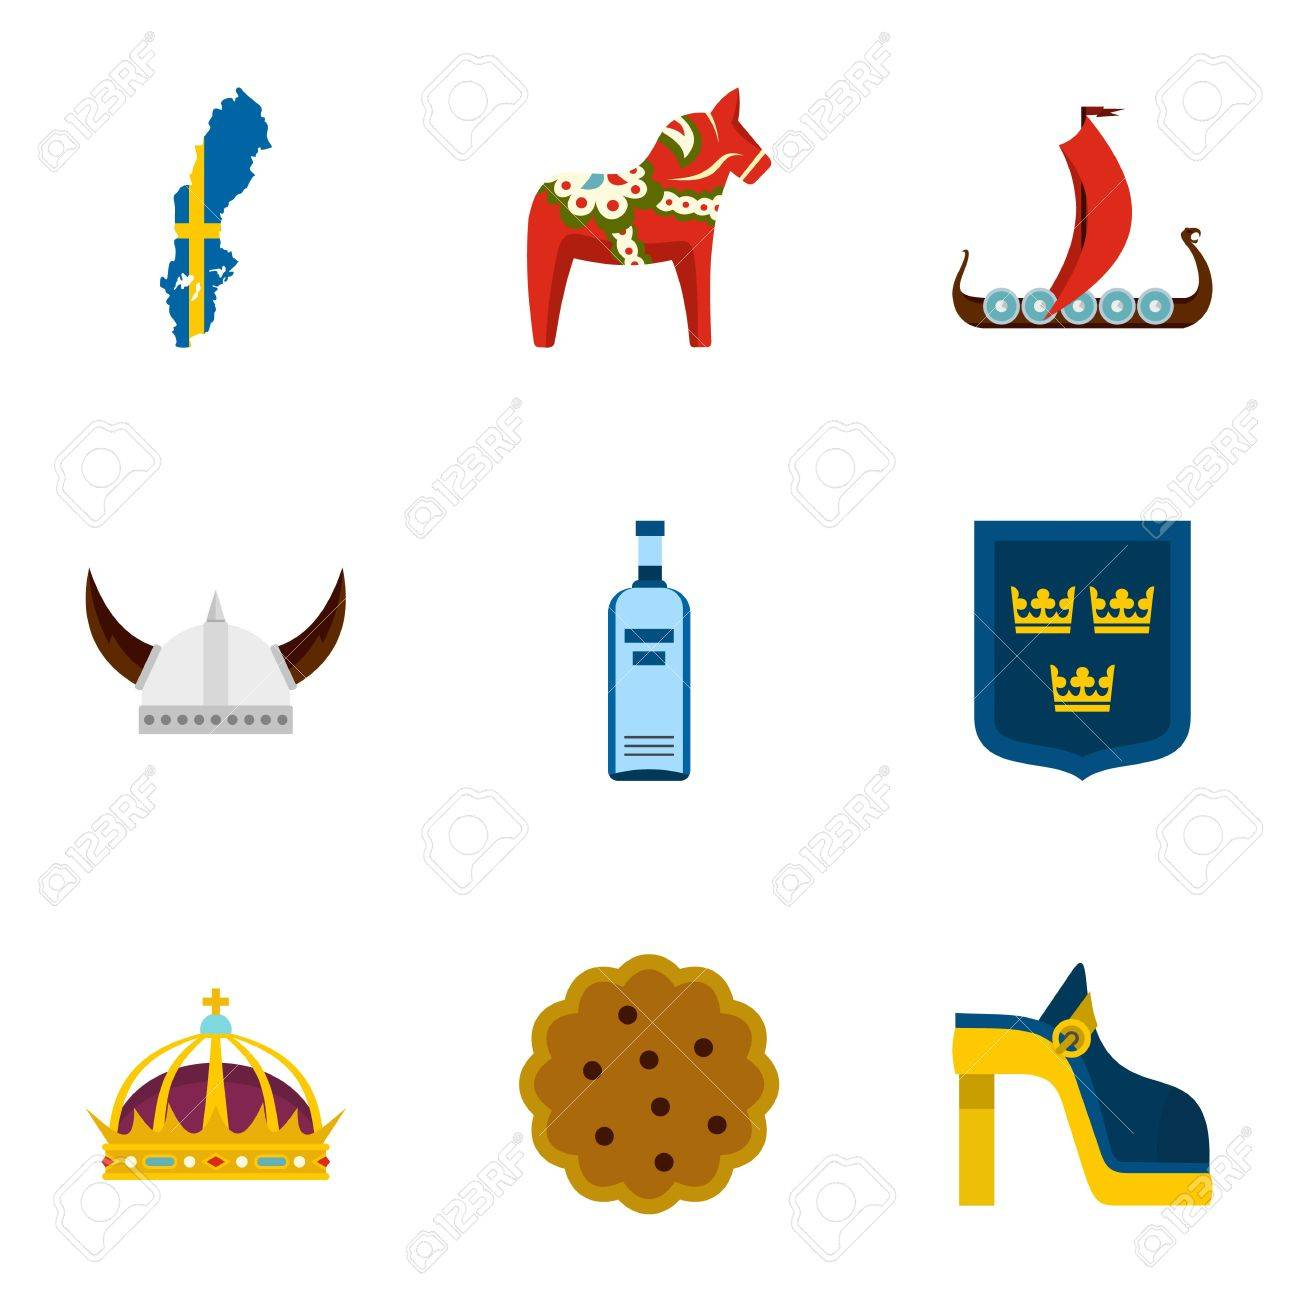 Symbols Of Sweden Icons Set Flat Style Royalty Free Cliparts